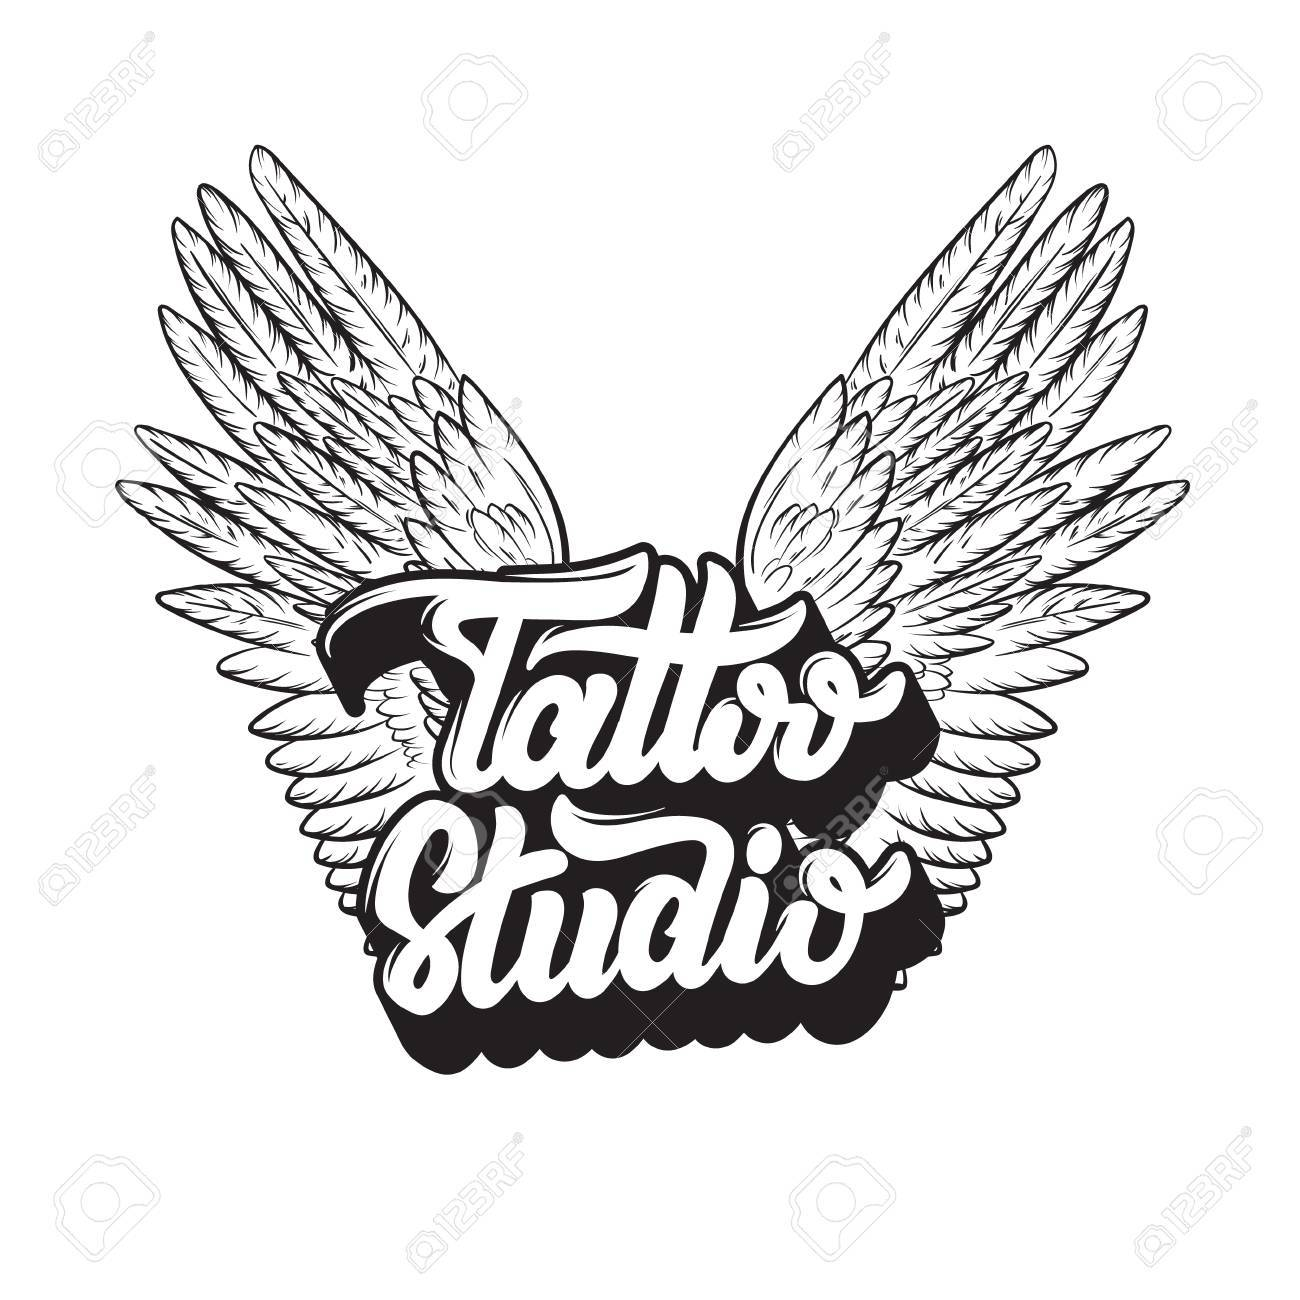 Tattoo Studio Vector Handwritten Trendy Lettering With Hand Drawn Illustration Of Wings Template For